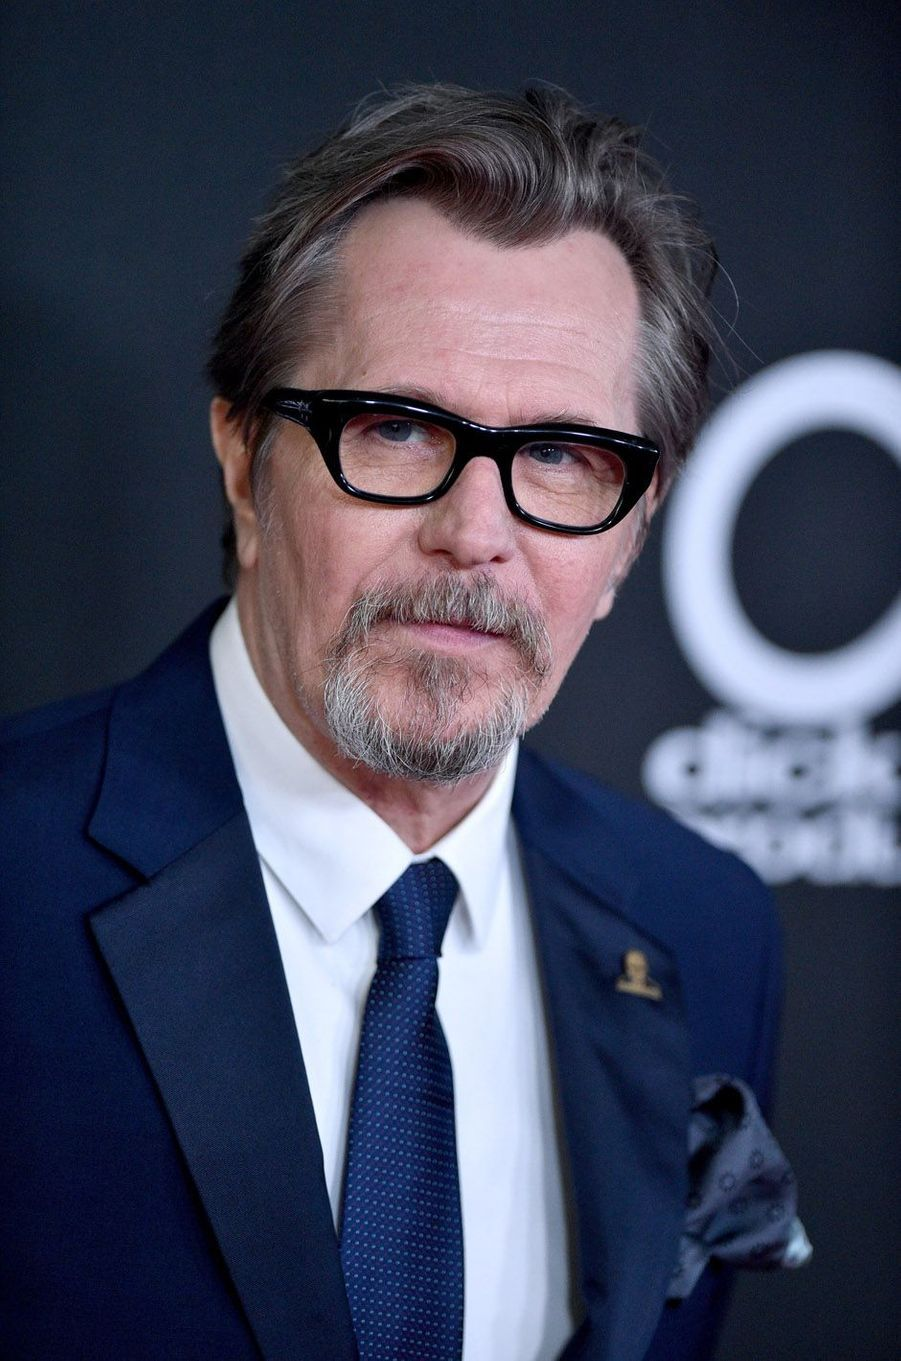 Gary Oldman à la cérémonie des Hollywood Film Awards à Beverly Hills, le 5 novembre 2017.